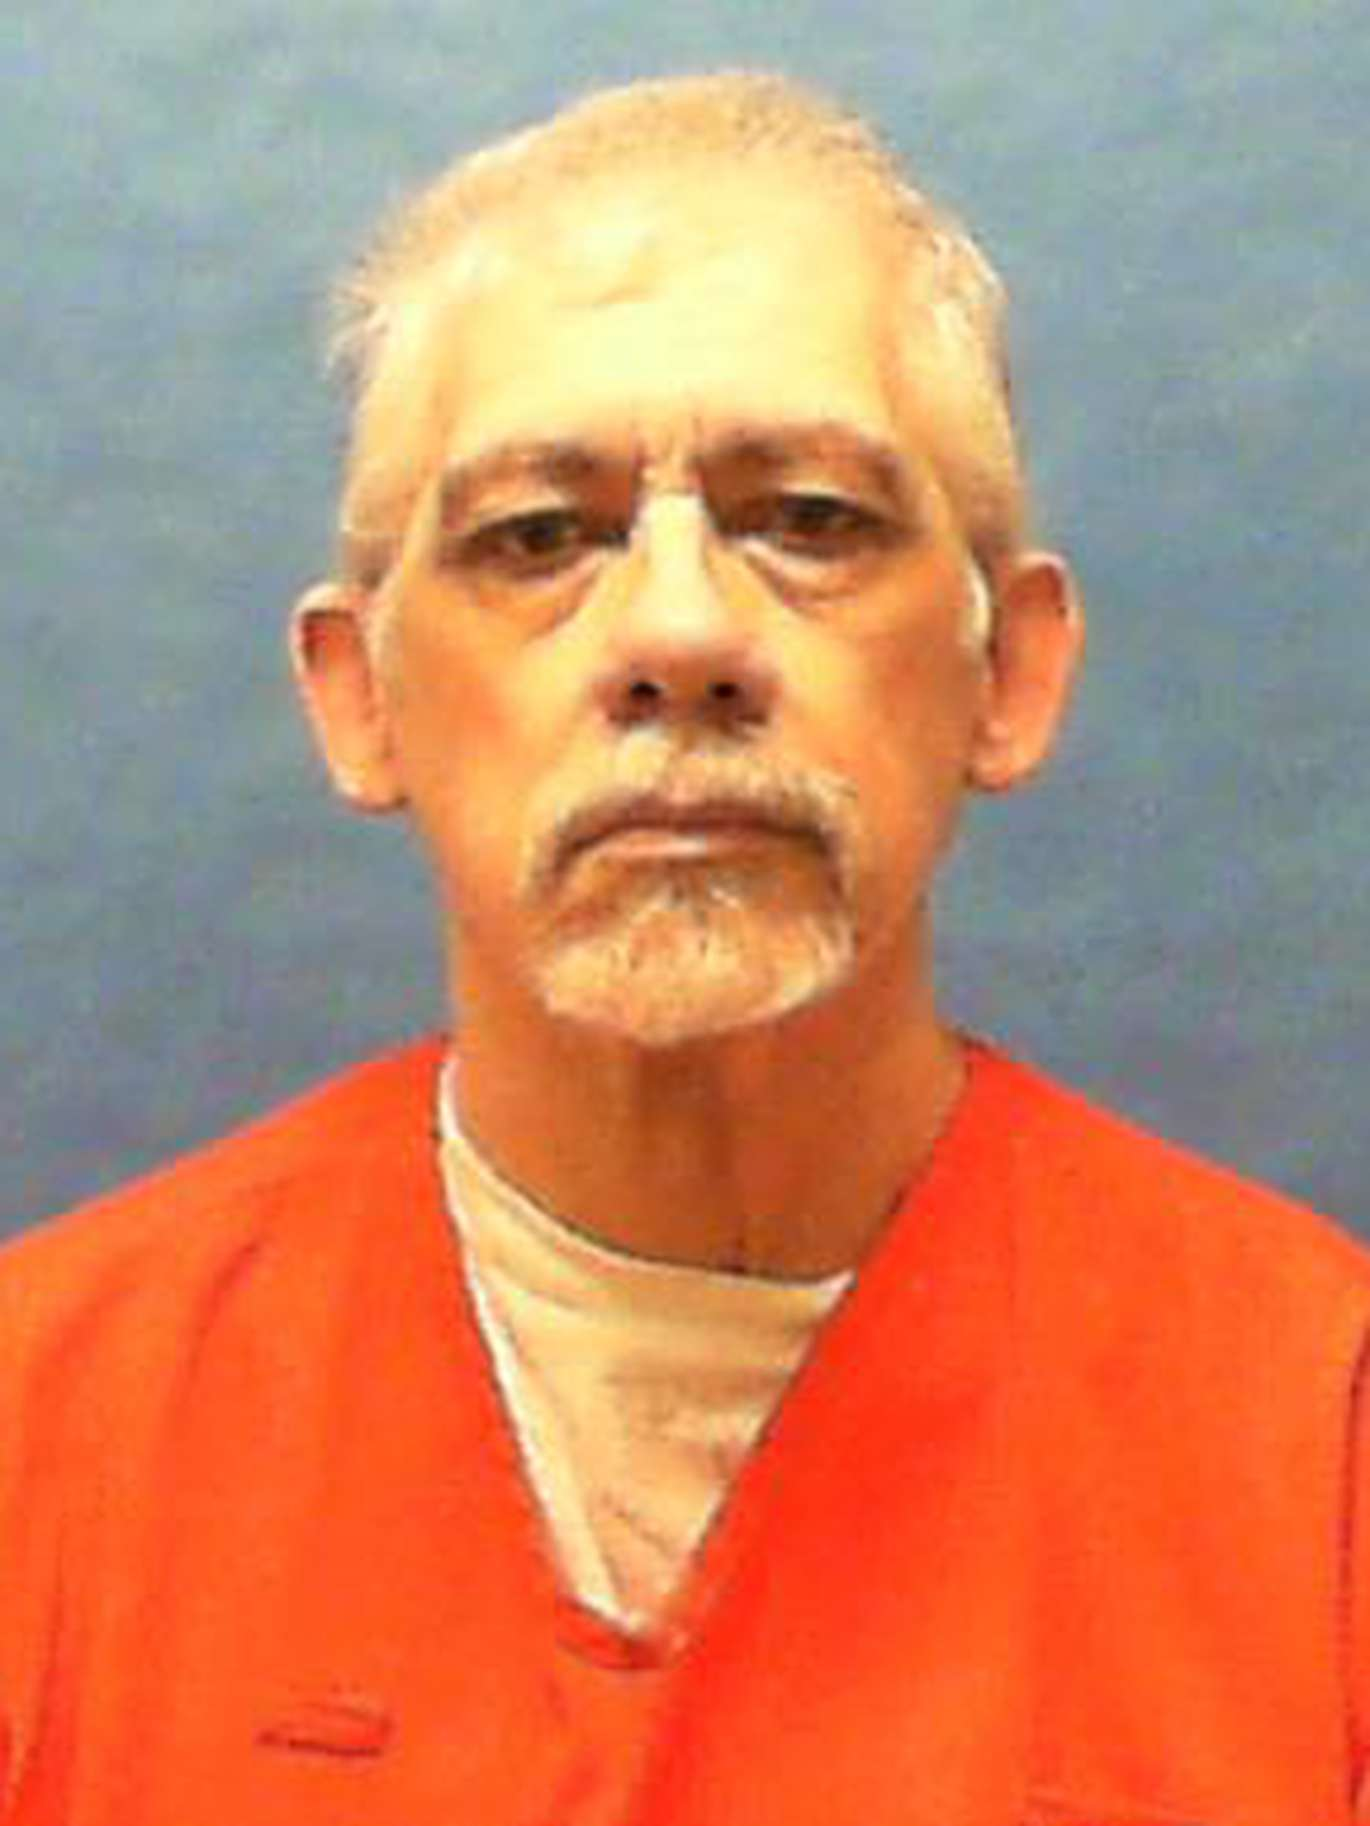 On August 1989, George Hodges was convicted of the first-degree murder of Betty Ricks in January 1987. She was a convenience store clerk who filed a criminal complaint against him the prior year for indecent exposure. He's been serving his sentence since Aug. 11, 1989.